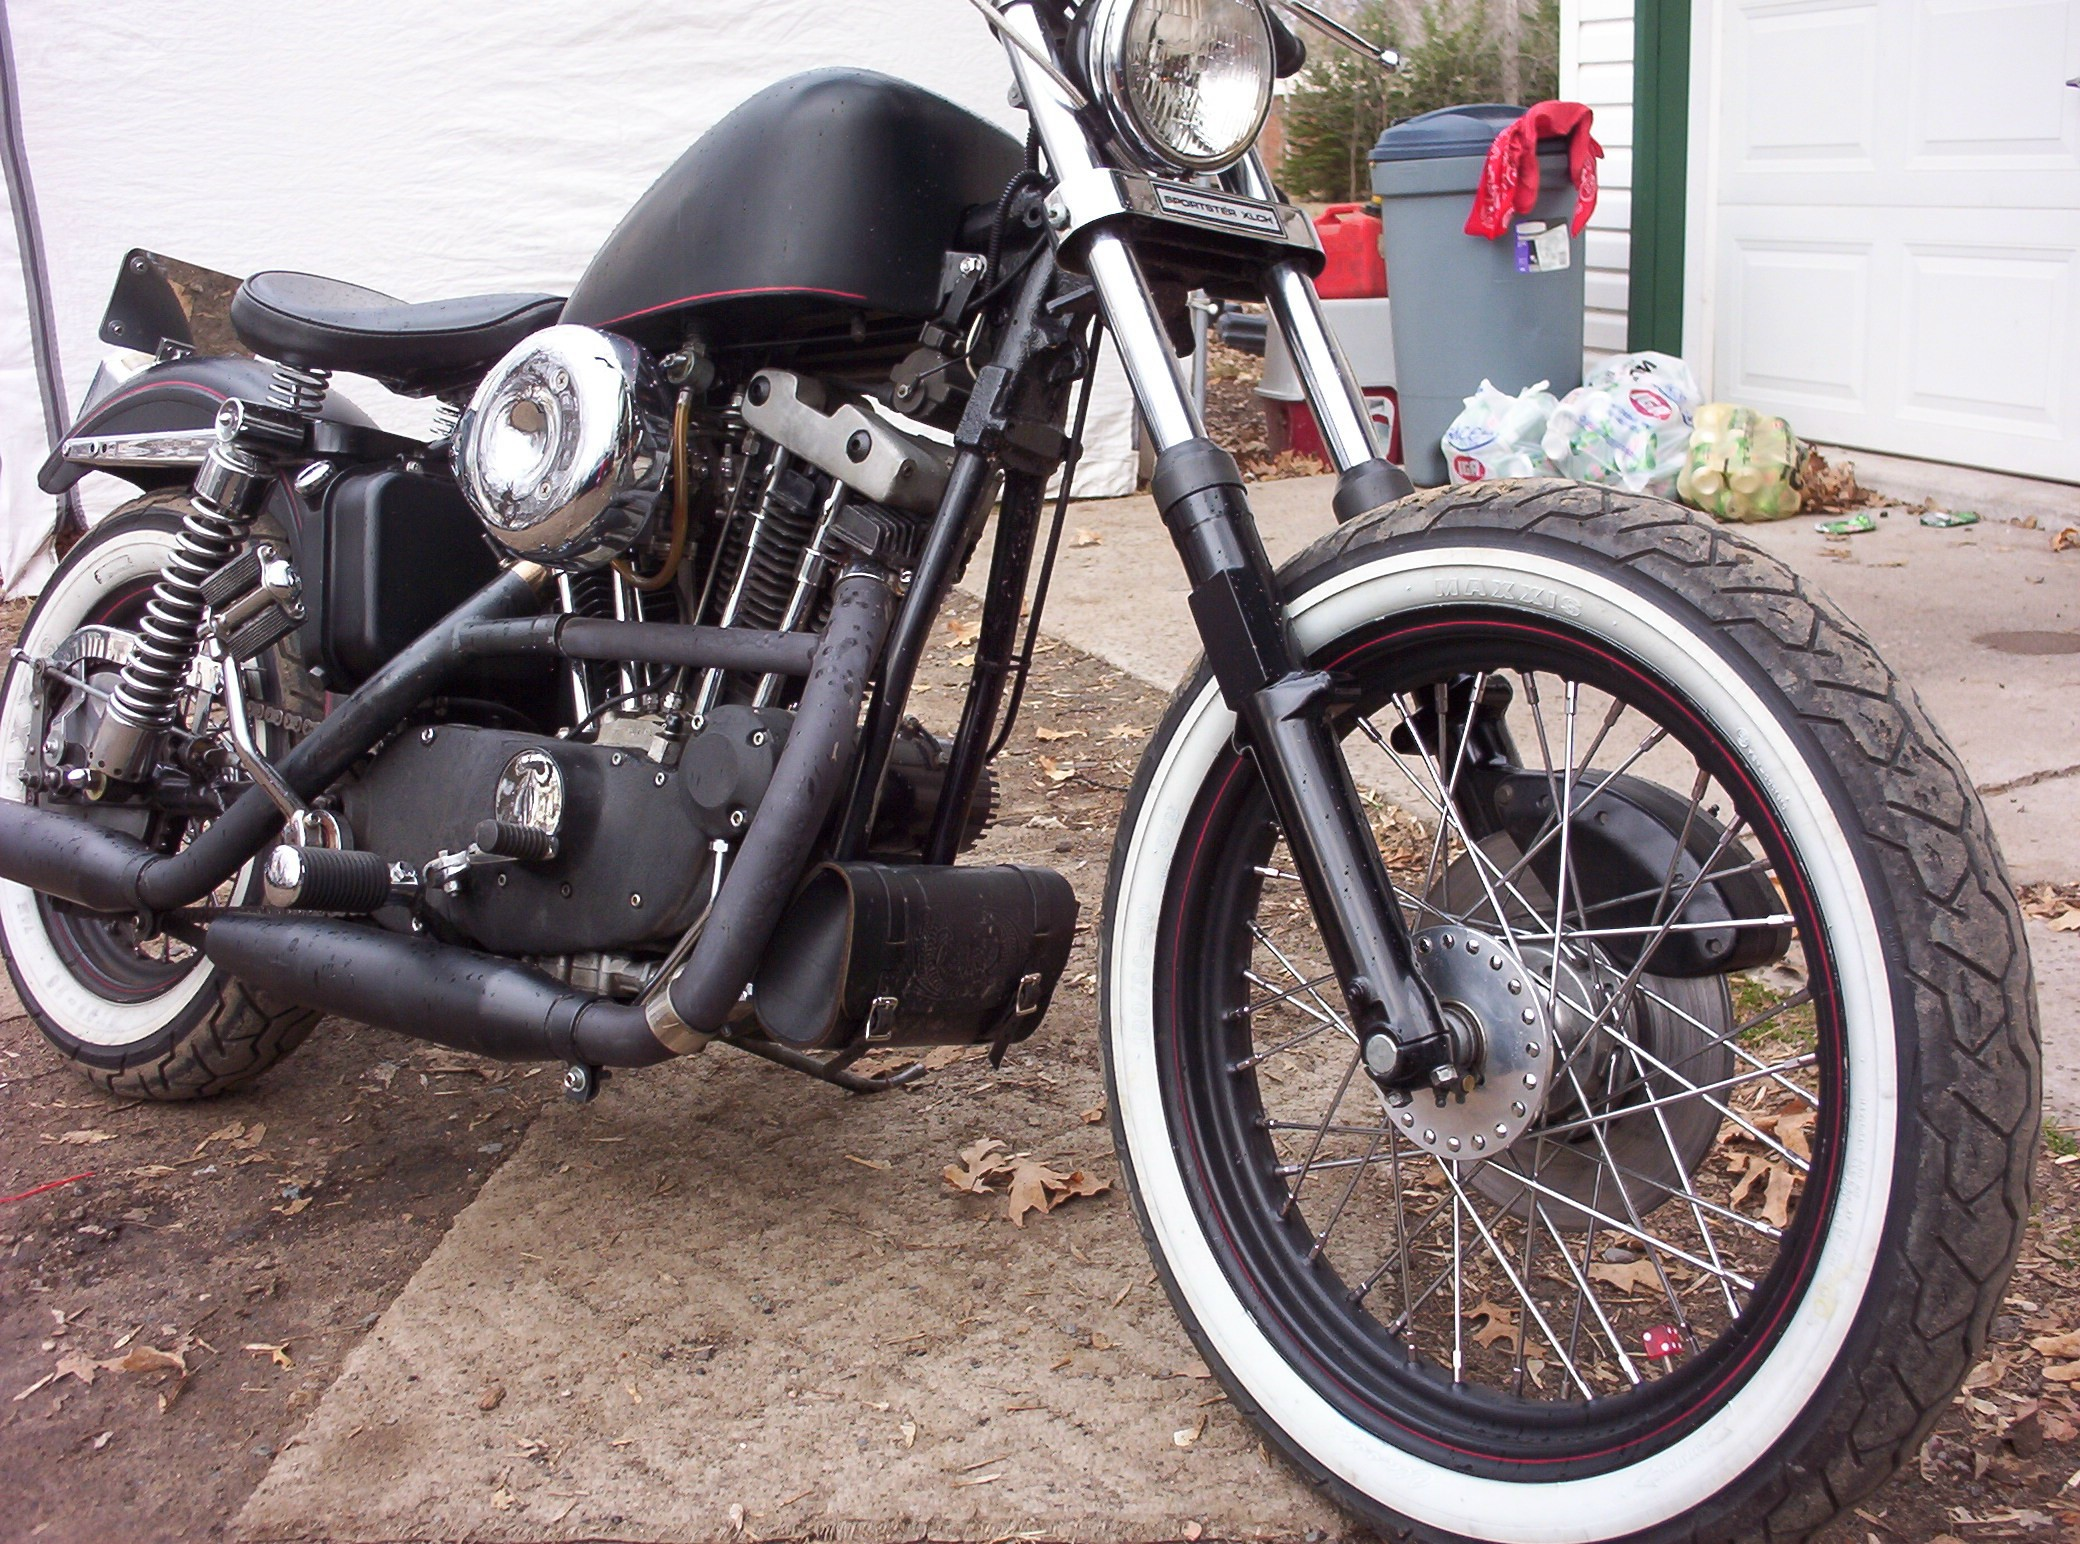 1979 Harley-Davidson XLH 1000 Sportster: pics, specs and information